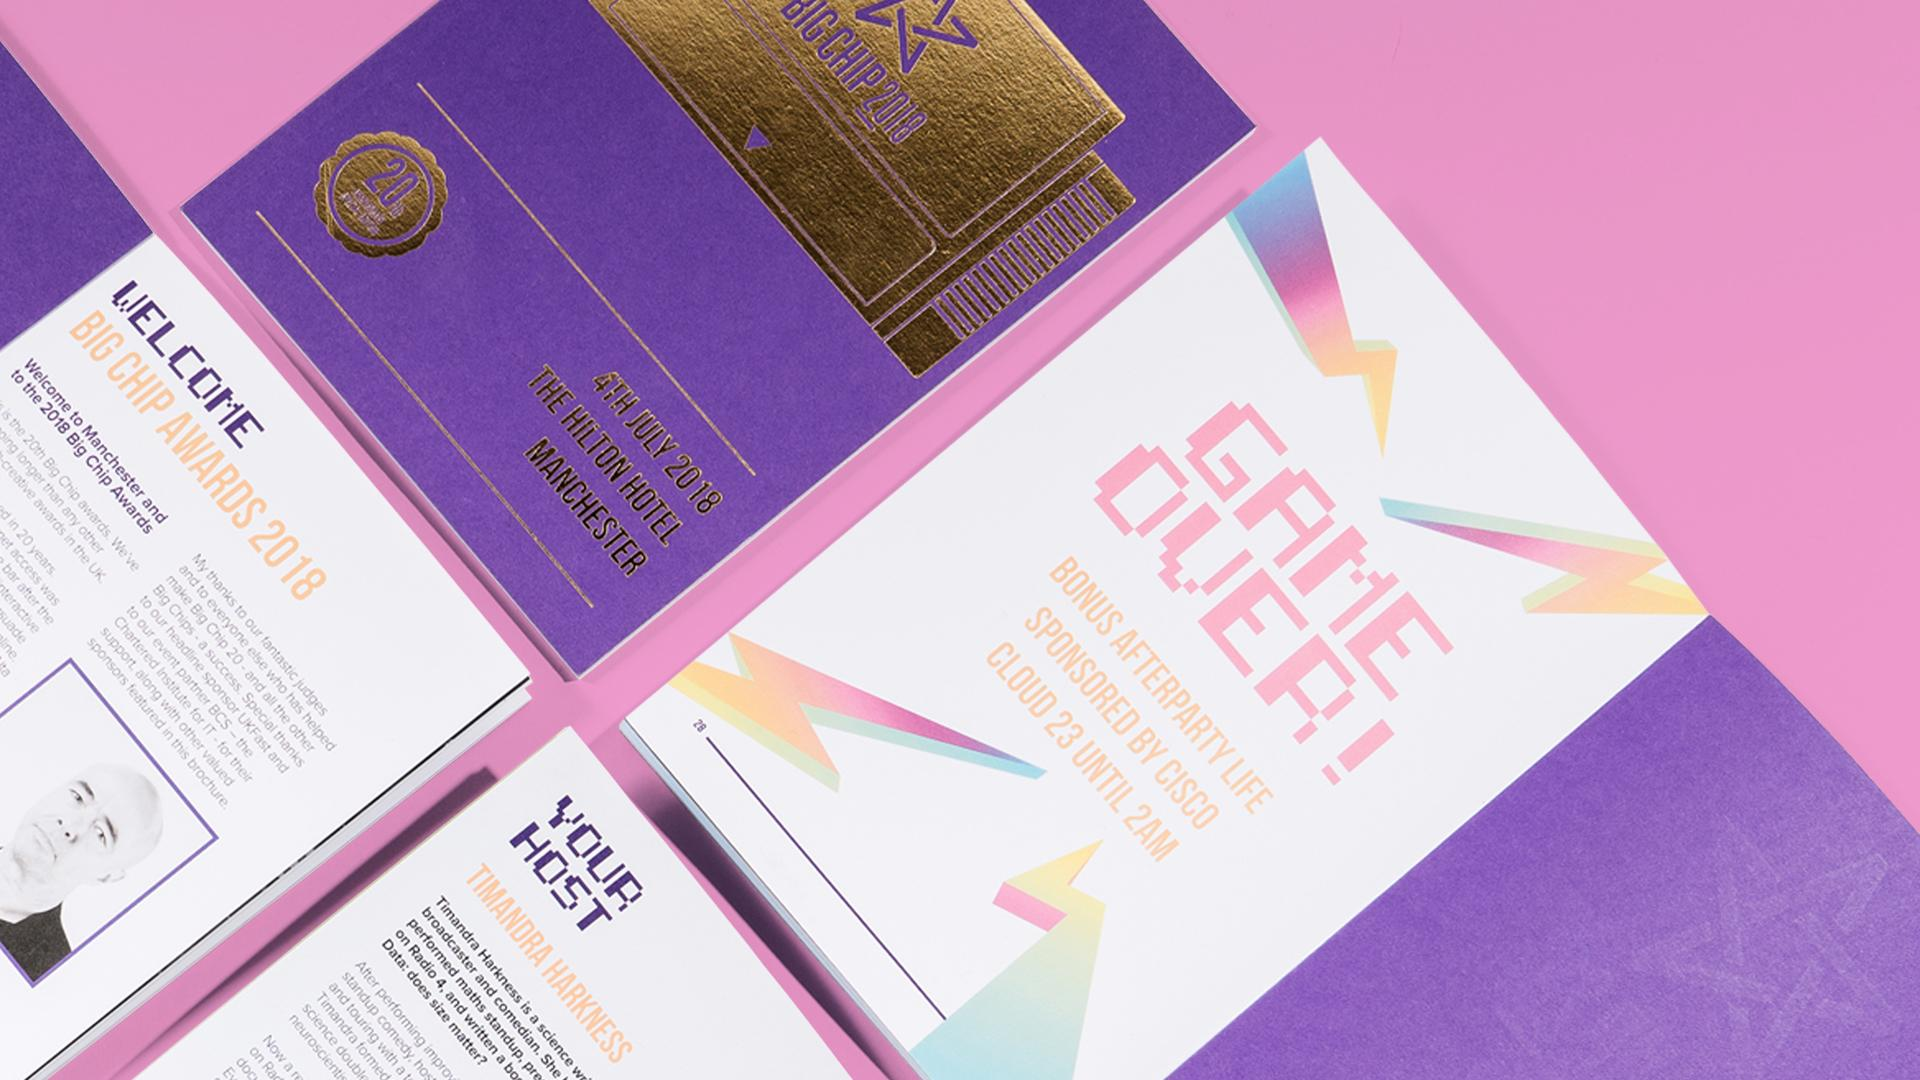 Big Chip branded and illustrated awards night booklet